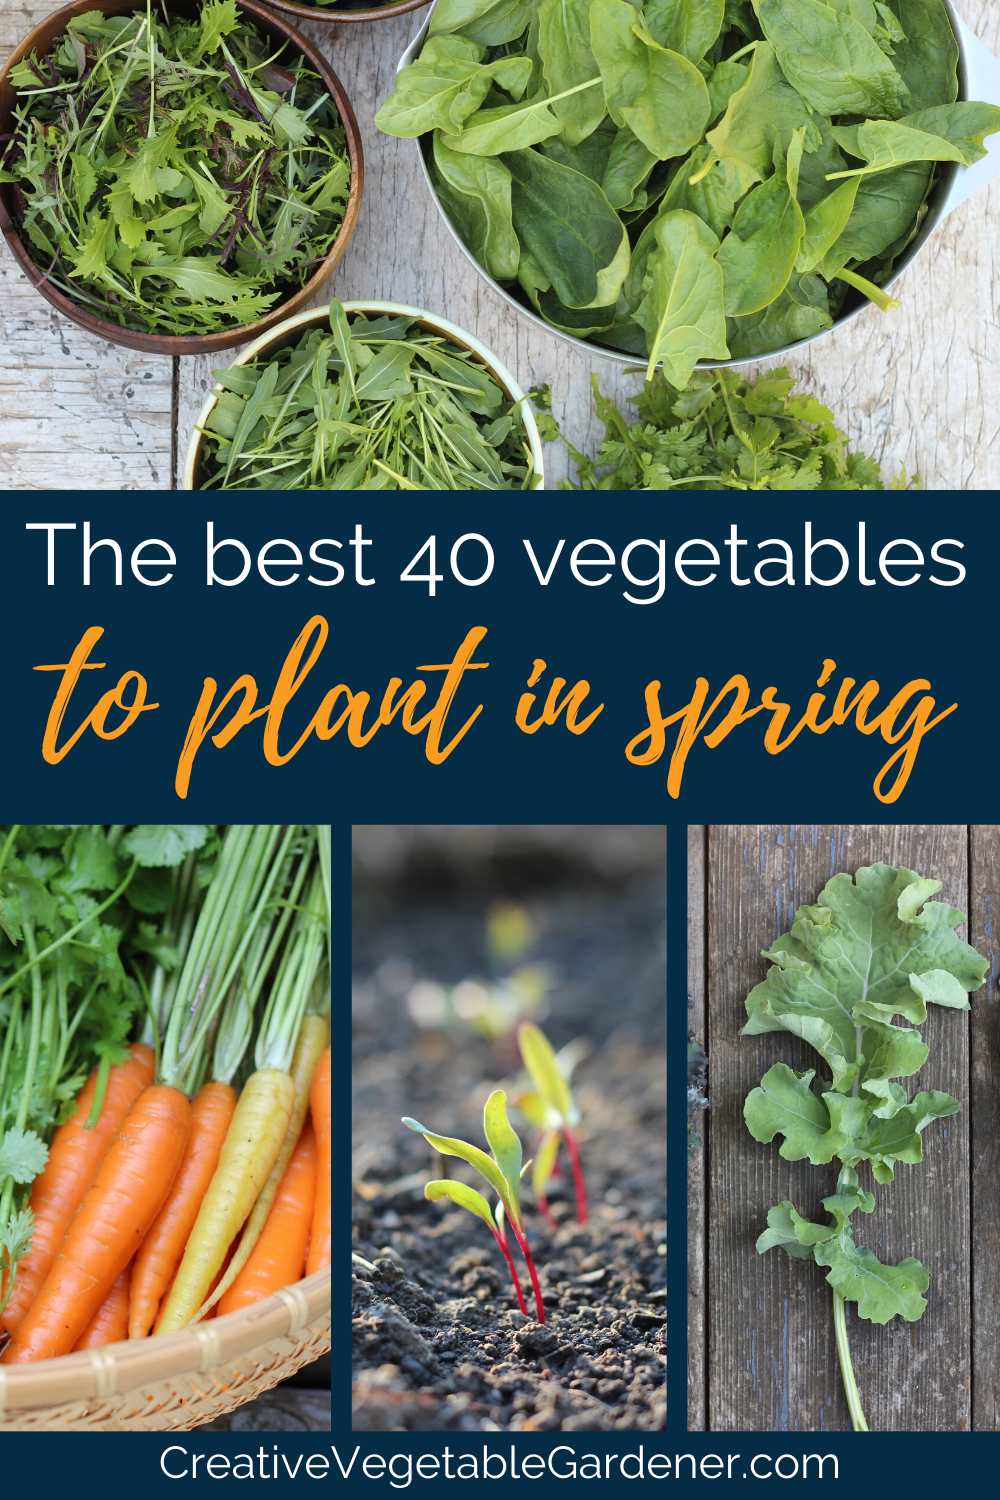 The Ultimate Guide To The Best Vegetables To Plant In Spring Creative Vegetable Gardener In 2021 Vegetable Garden Tips Vegetables Plants